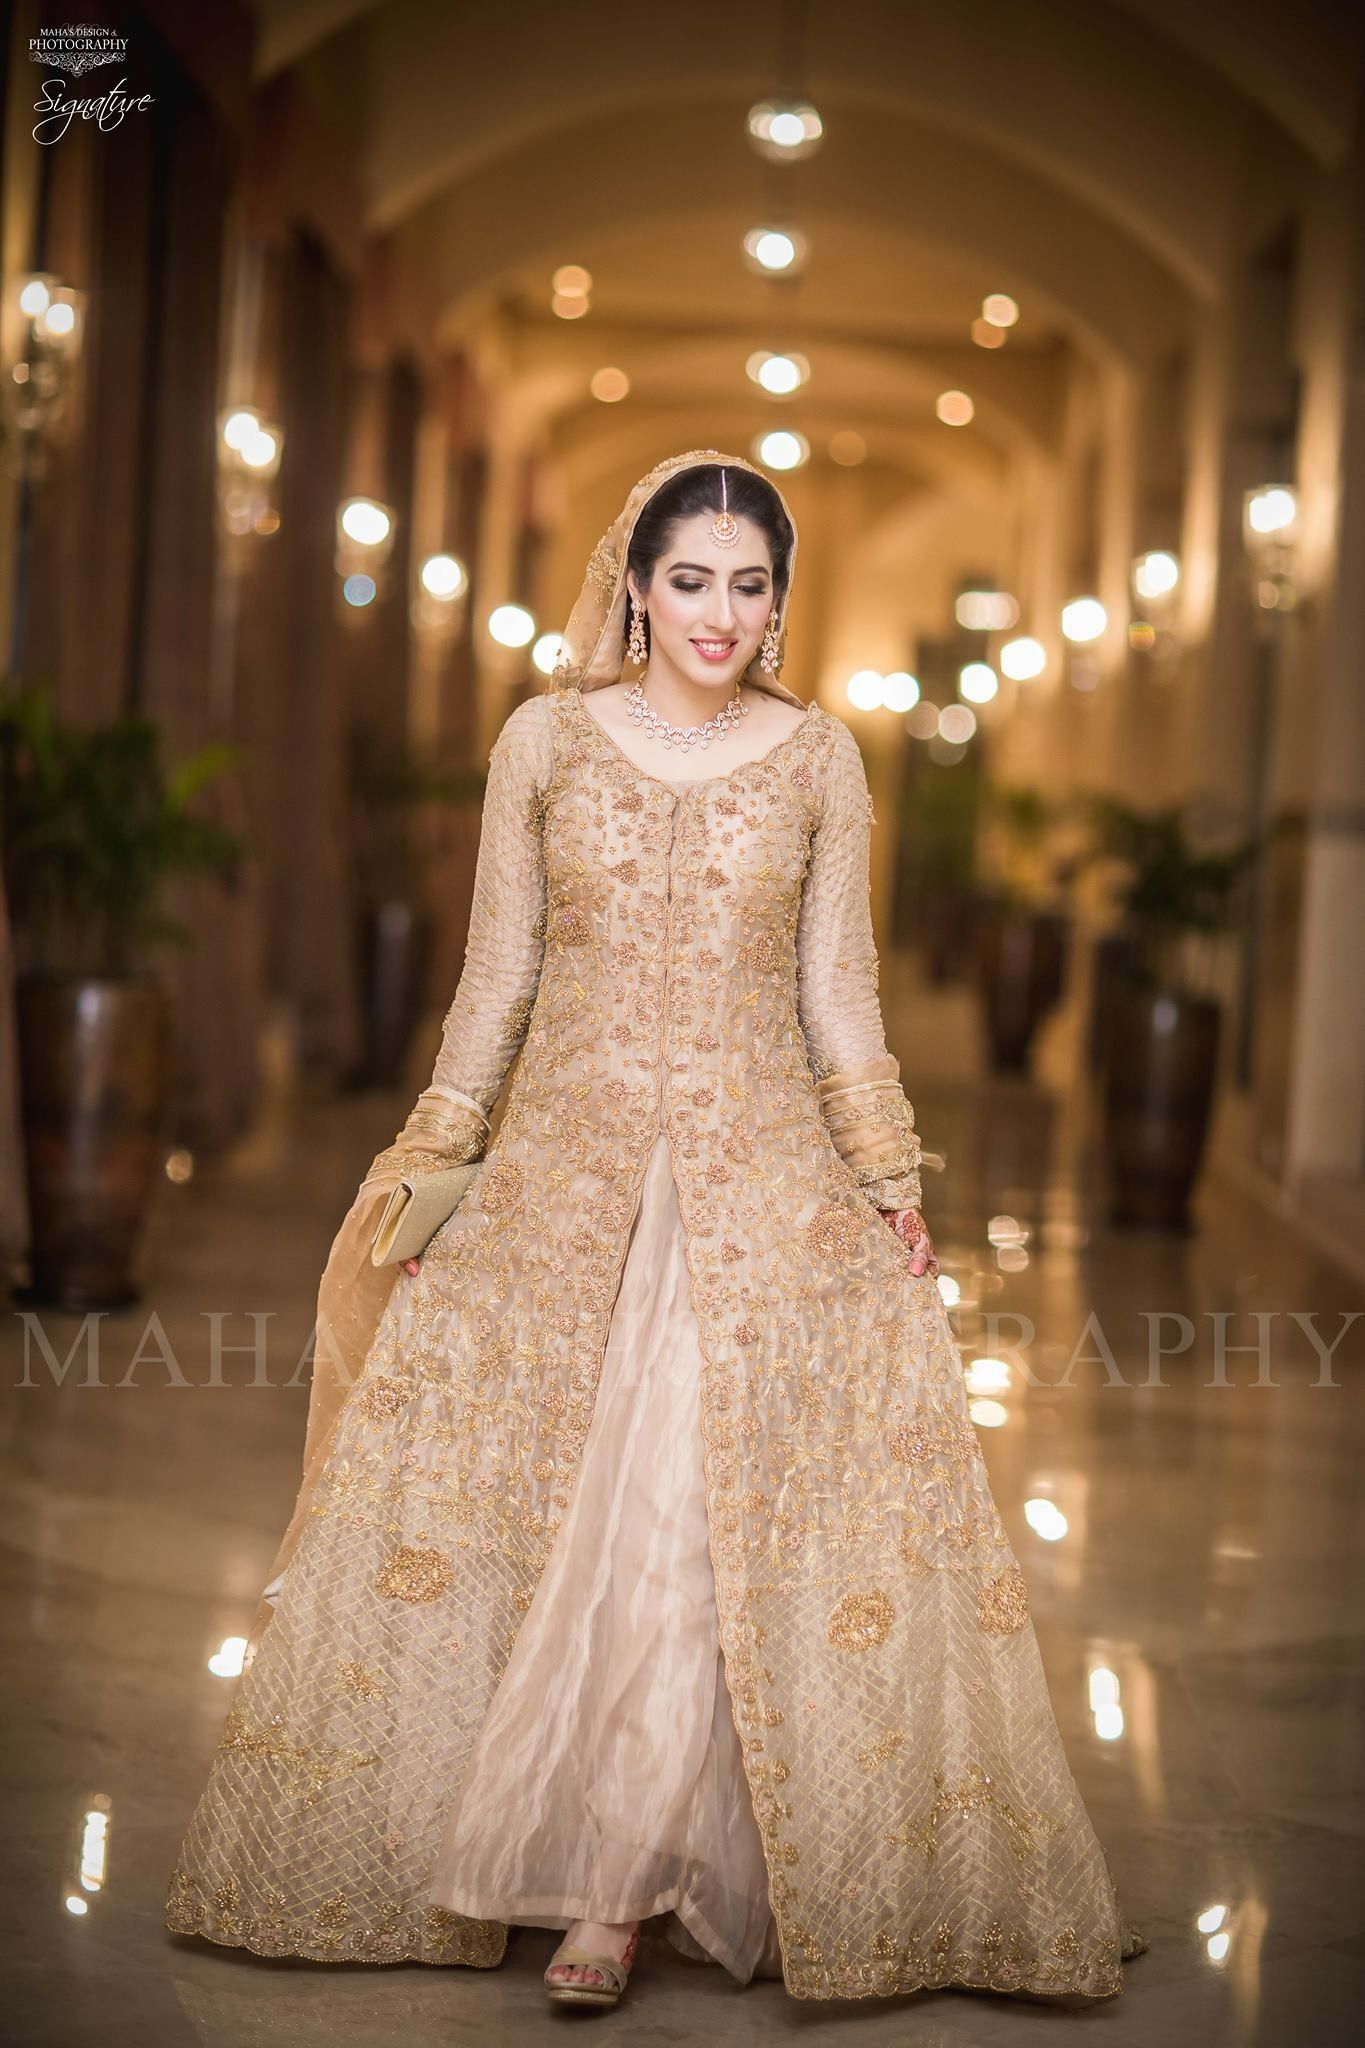 What Is Price Of This Dress Pakistani Bridal Dresses Pakistani Wedding Dresses Walima Dress